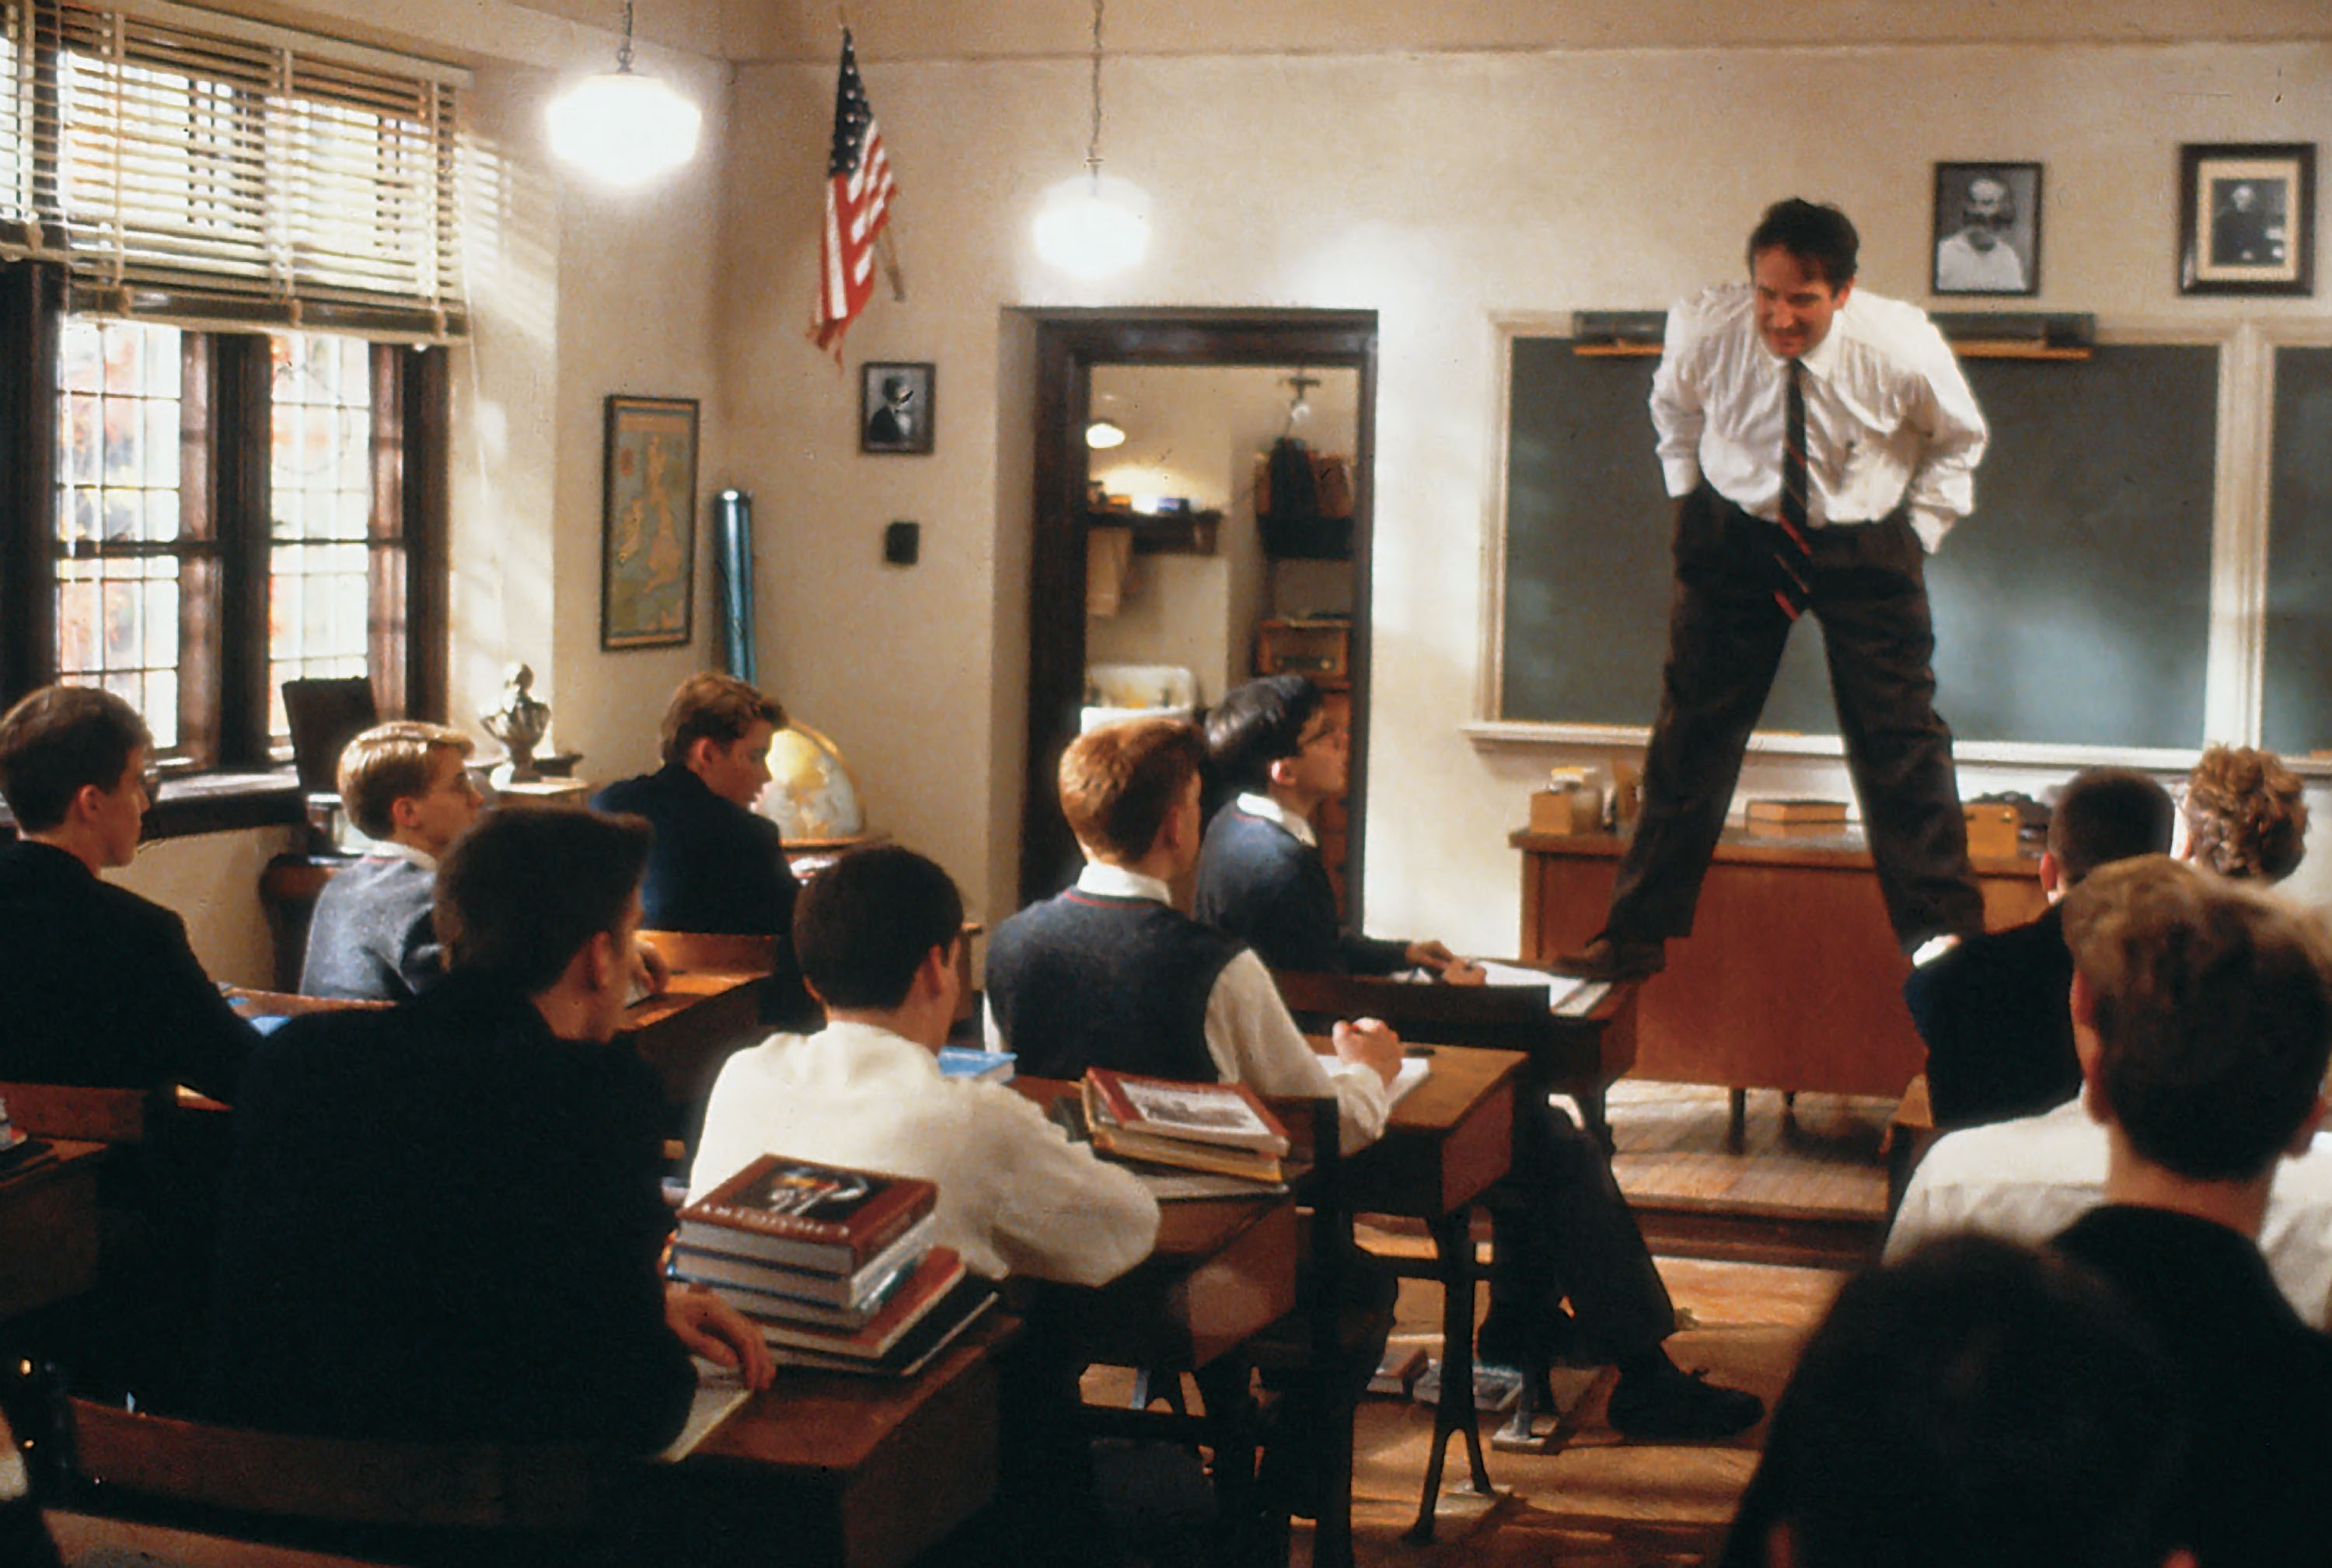 http://images6.fanpop.com/image/photos/32000000/Dead-poets-society-robin-williams-32089565-3000-2017.jpg